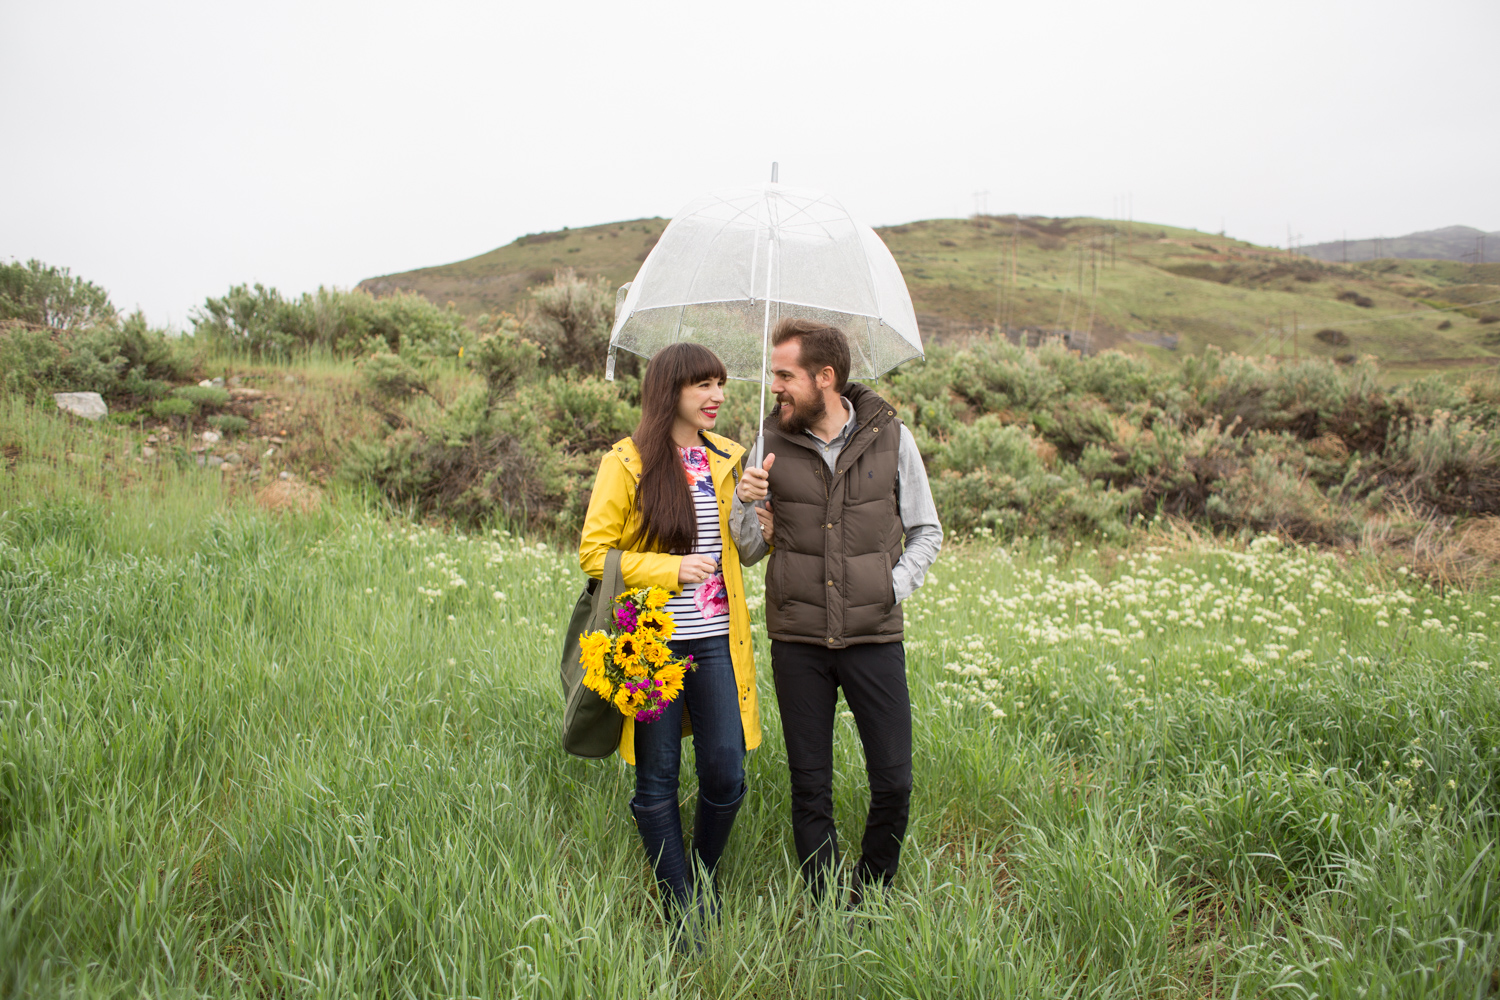 couple in joules clothing rain gear on a rainy day